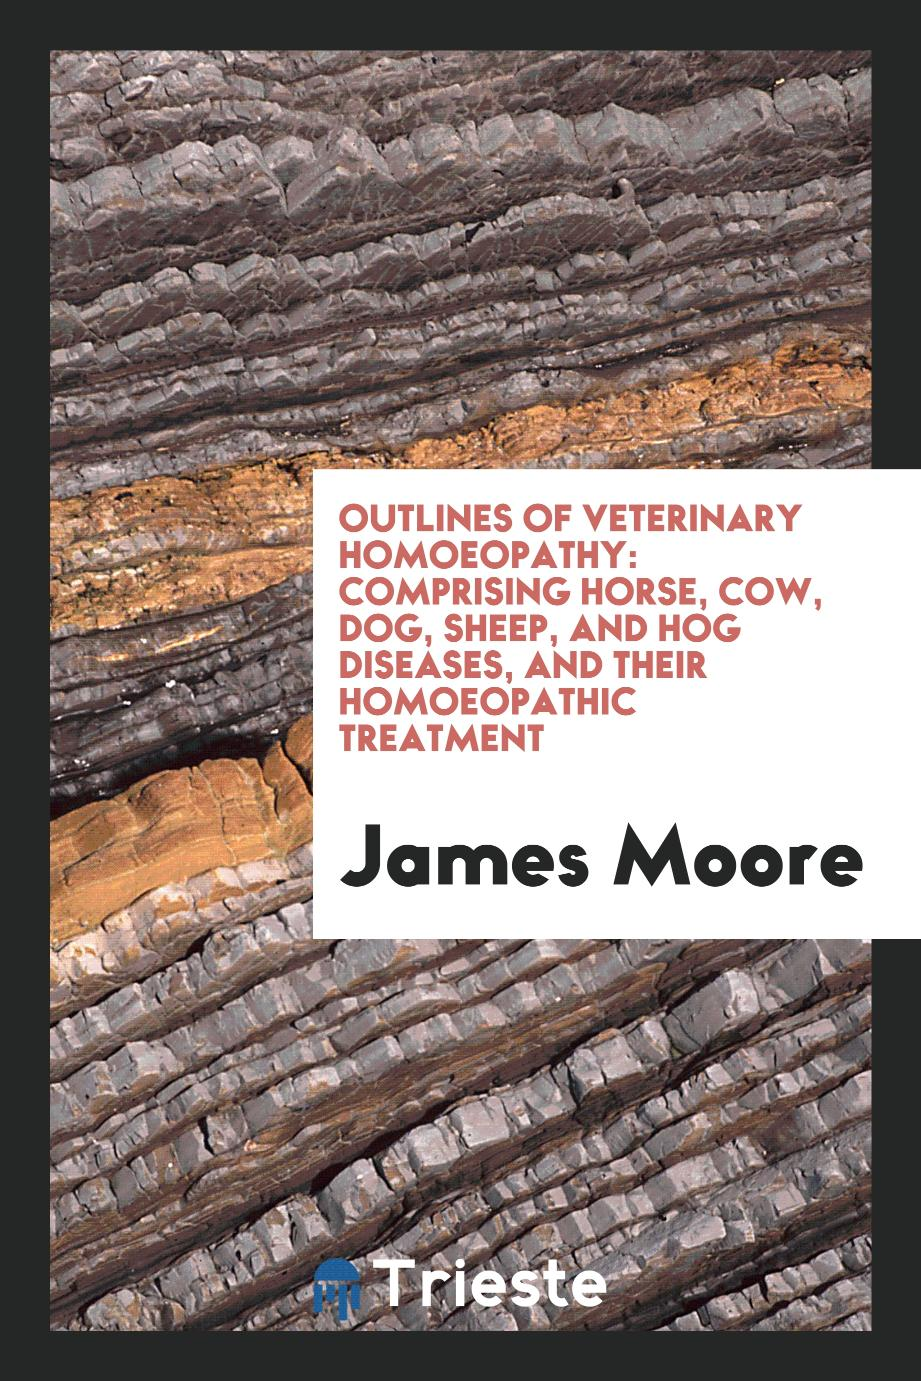 Outlines of Veterinary Homoeopathy: Comprising Horse, Cow, Dog, Sheep, and Hog Diseases, and Their Homoeopathic Treatment